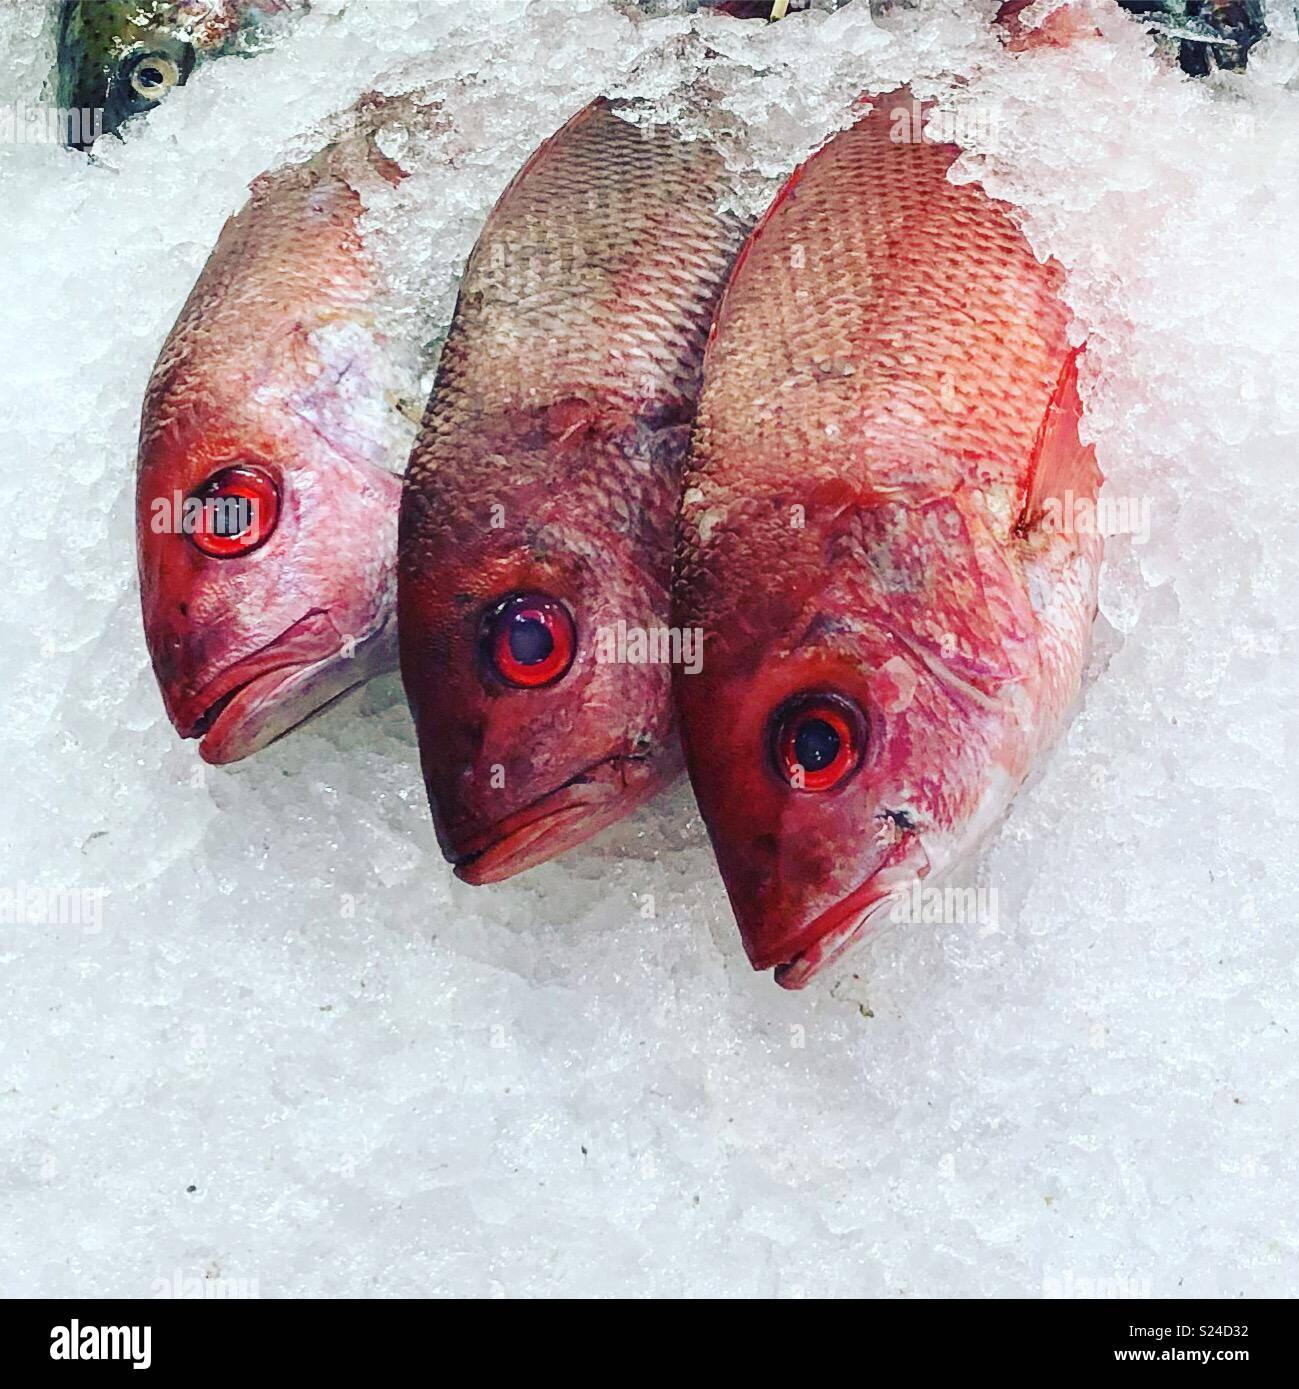 Red snapper fish on ice, st Lawrence market, Toronto Stock Photo